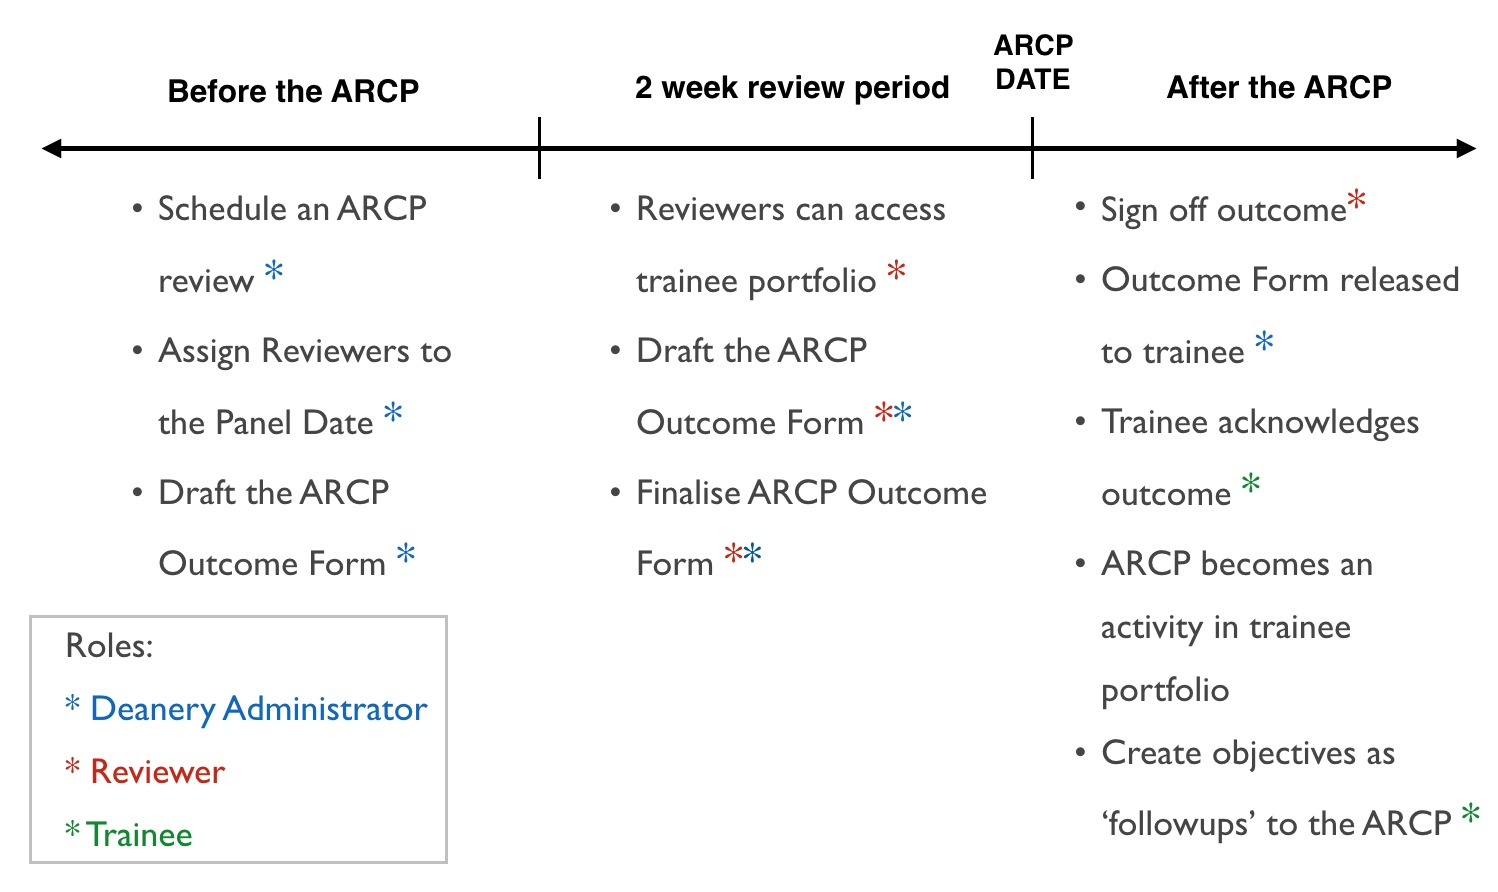 RCPsych_ARCP_Online_Process___Roles.jpeg